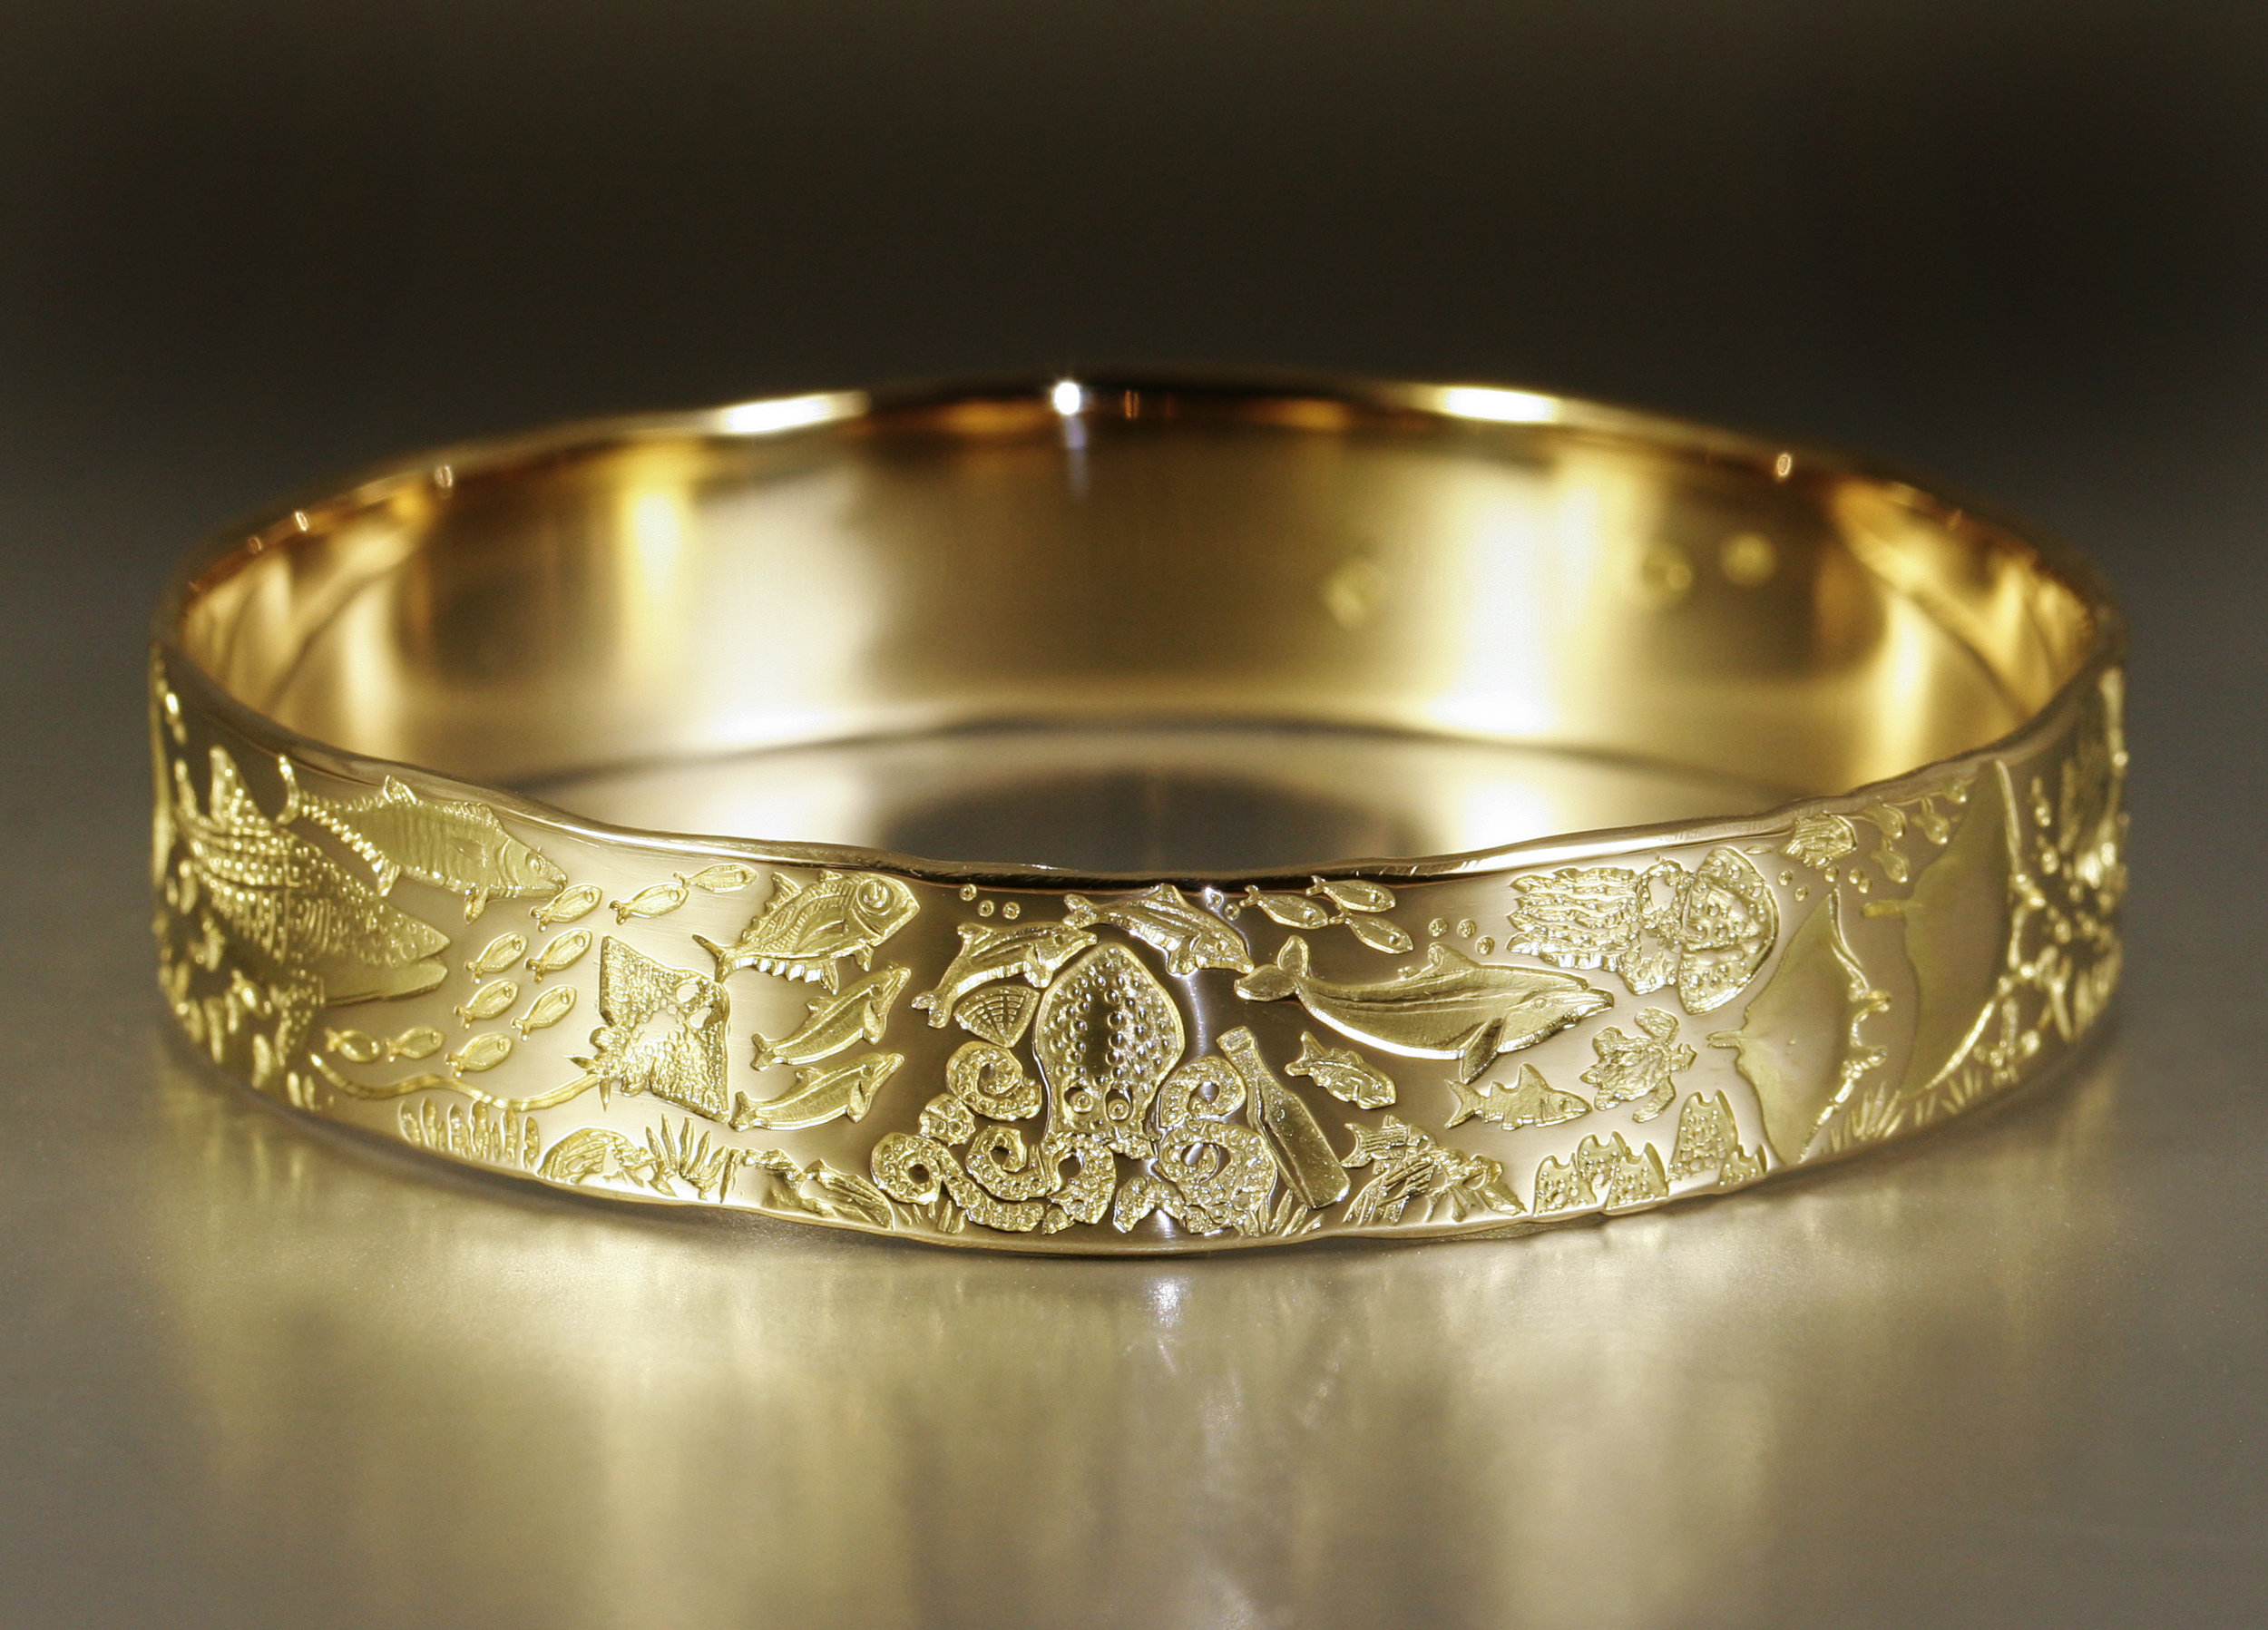 J.Miller-Oceans-of-the-Universe-18ct-yellow-gold-bangle.jpg